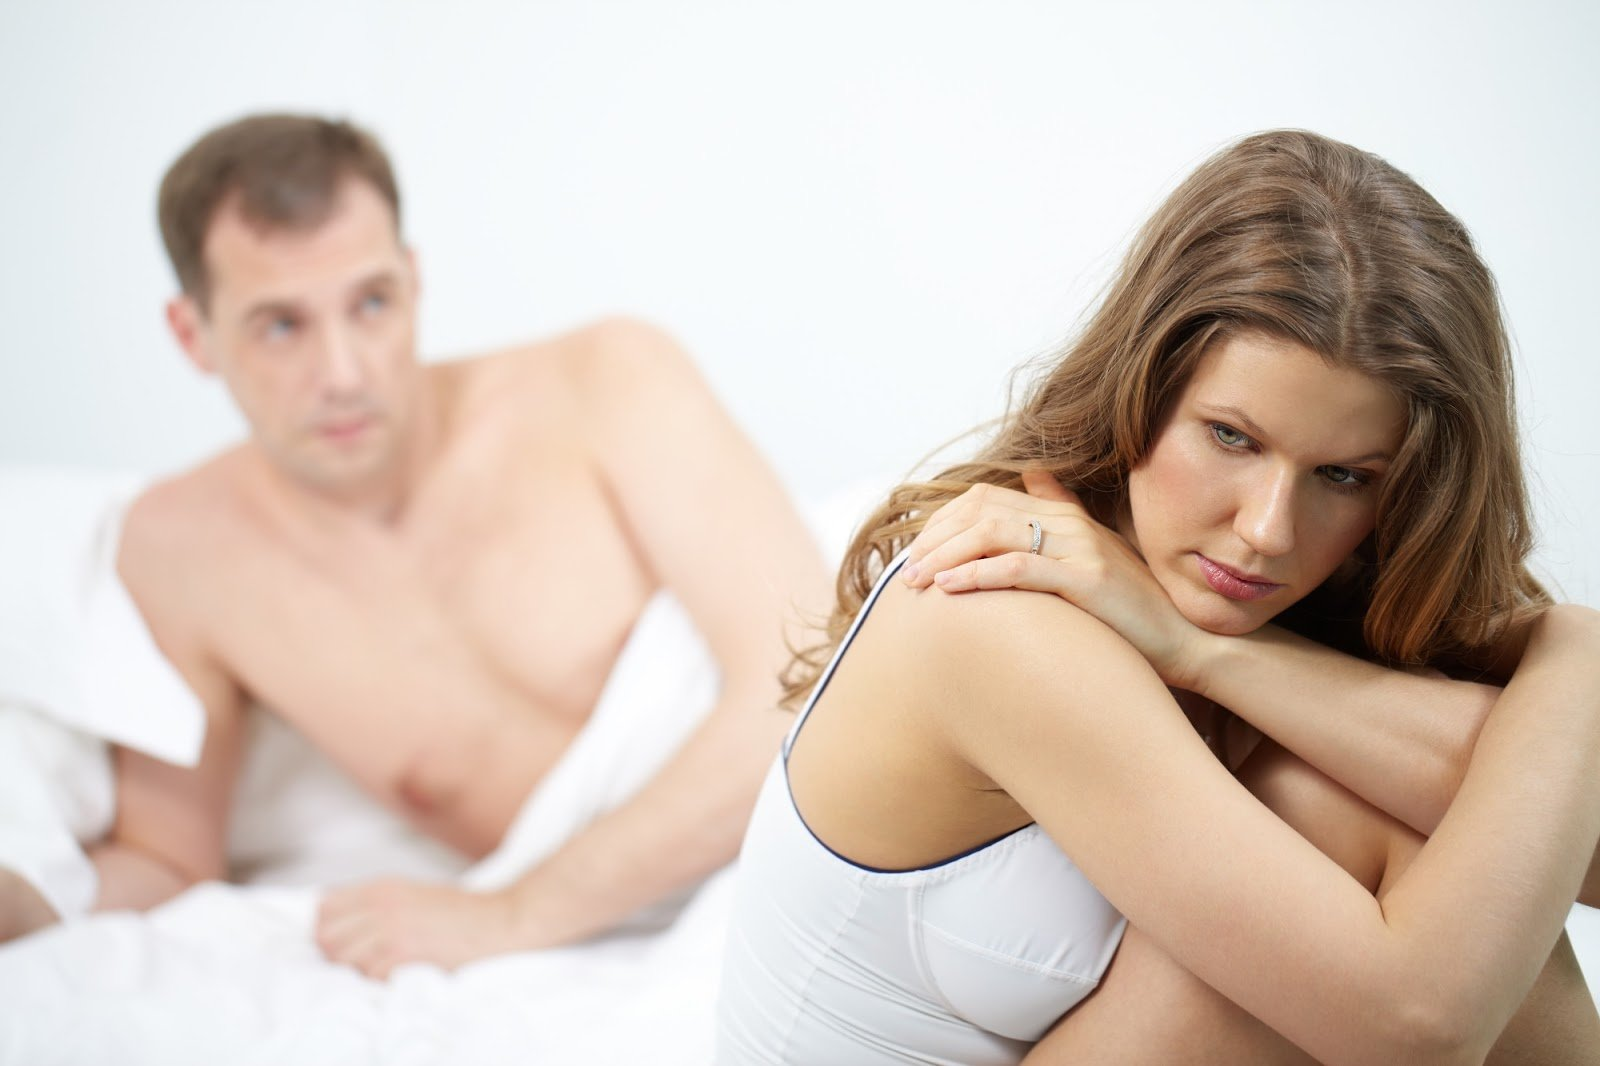 How to Build Intimacy and Overcome Sexual Frustration While Treating ED